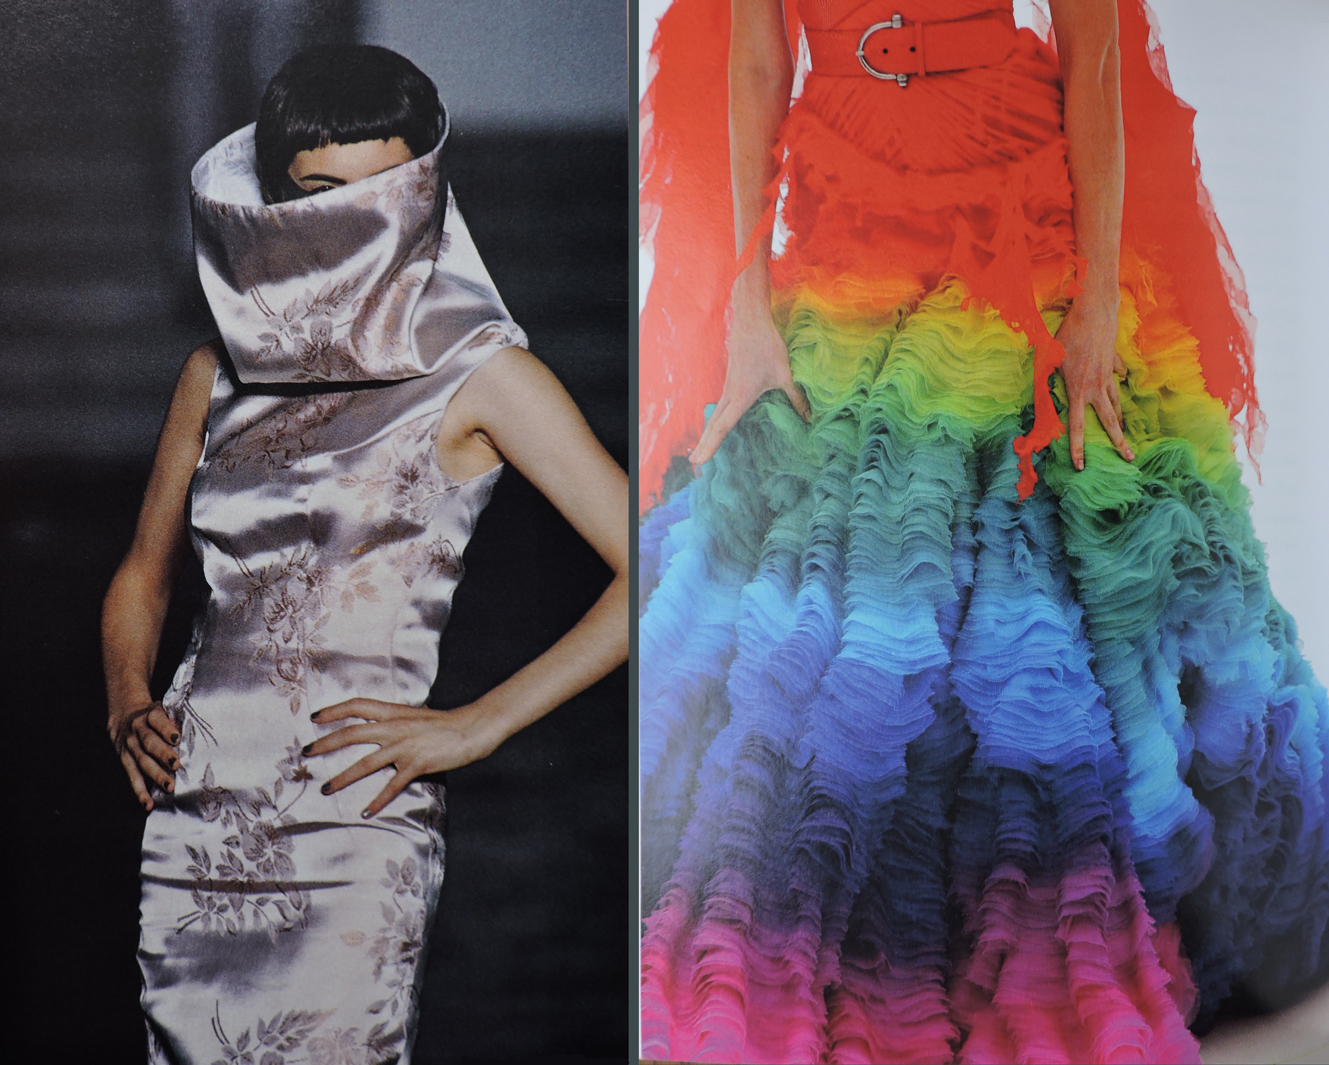 """Collar and color. On the left: funnel necked dress, """"Bellmer la Poupée,"""" SS 1997. On the right: detail, silk chiffon rainbow dress, """"Irere,"""" SS 2003"""